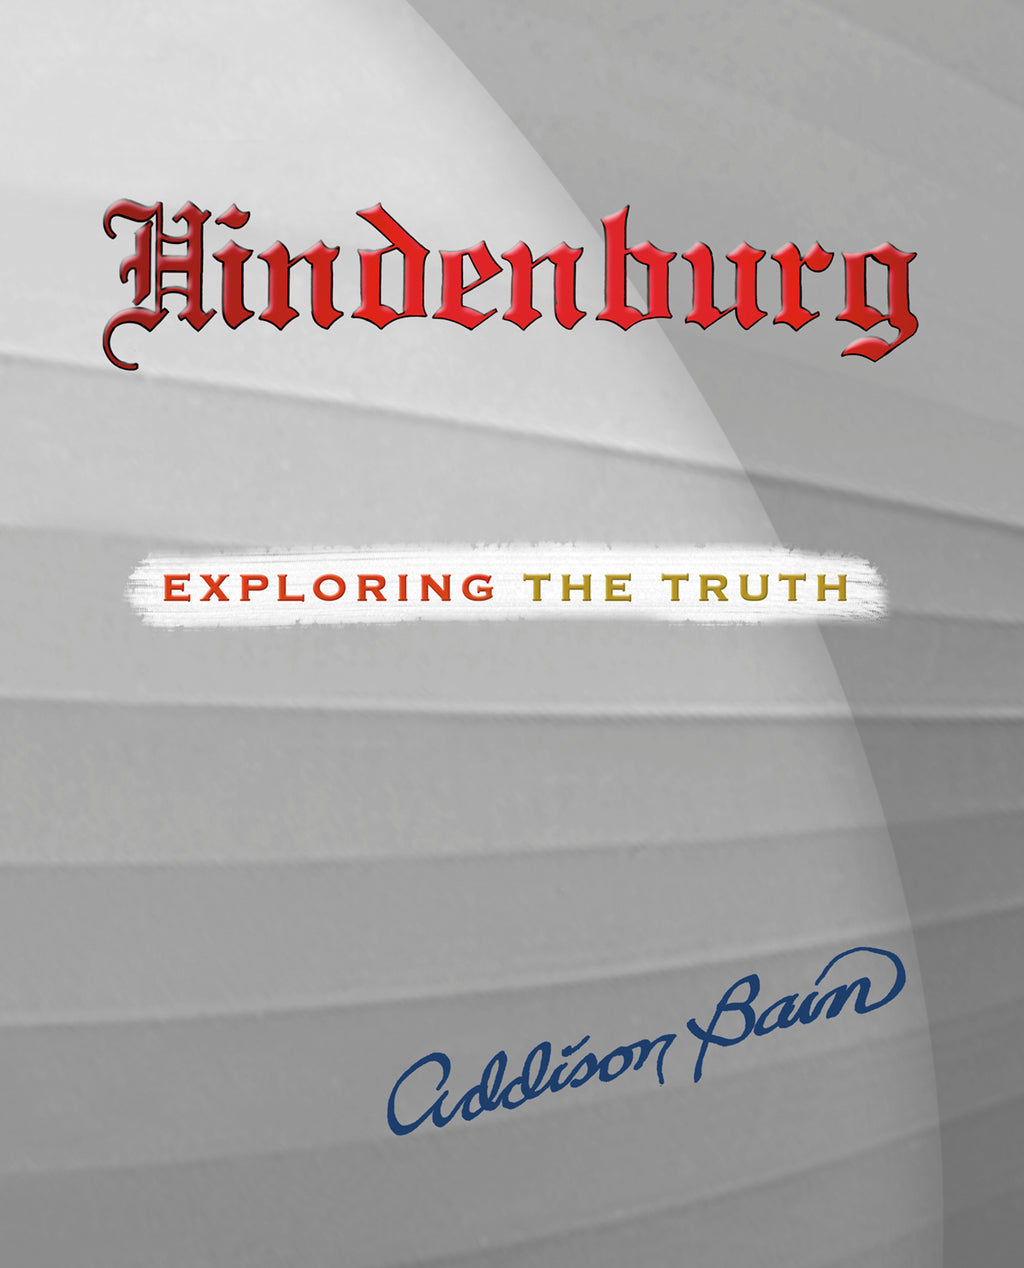 Hindenburg, Addison Bain, PH.D. - Blue Note Publications, Inc